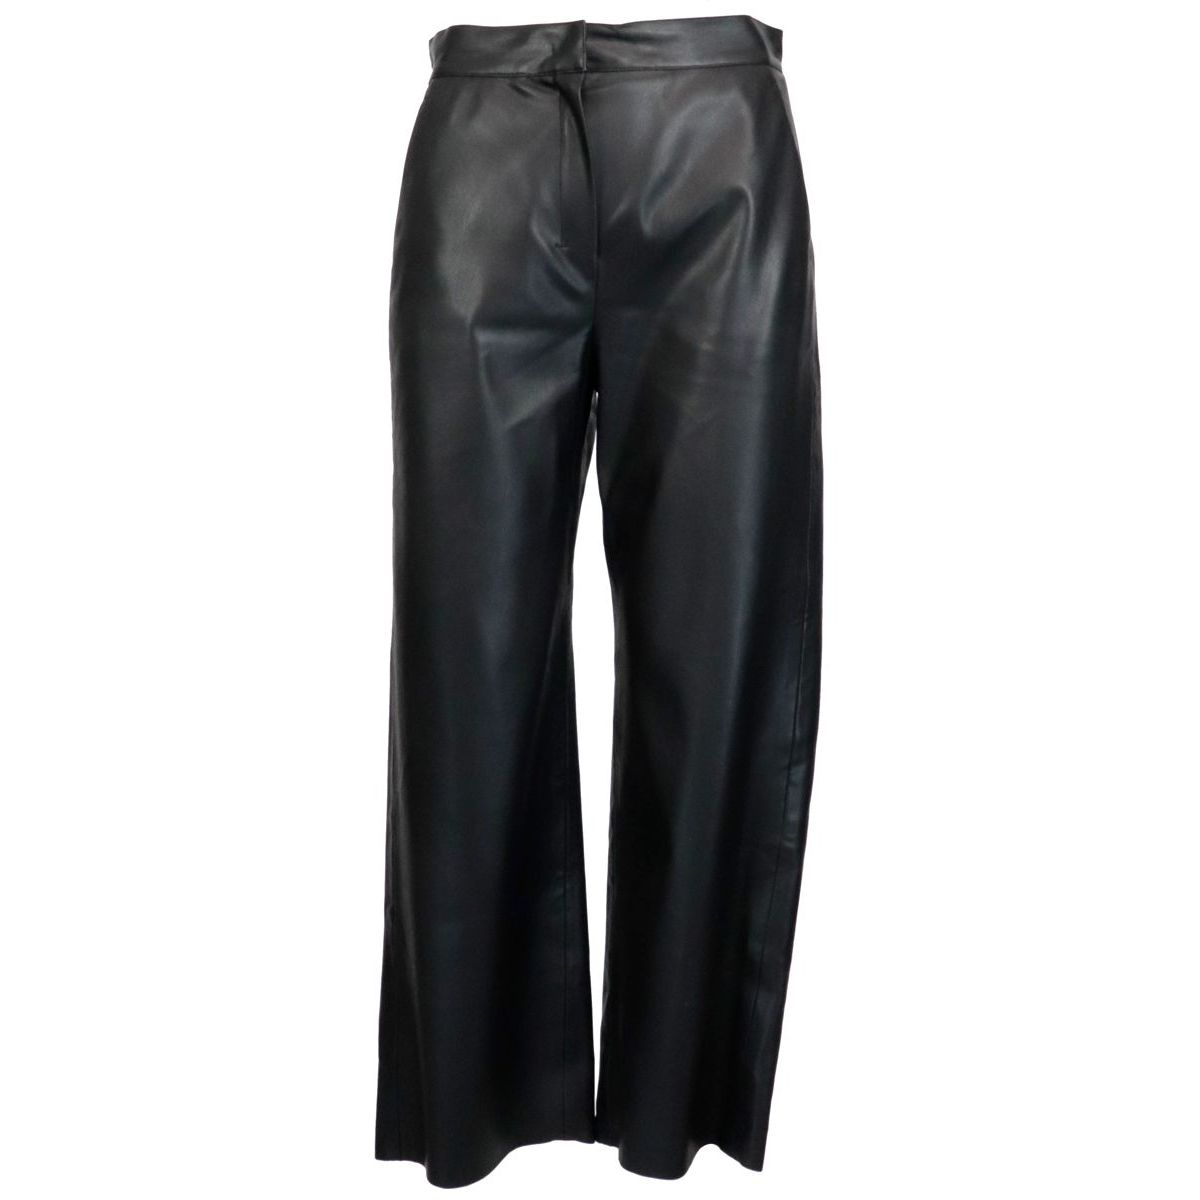 Cantico cropped trousers in synthetic leather Black S MAX MARA